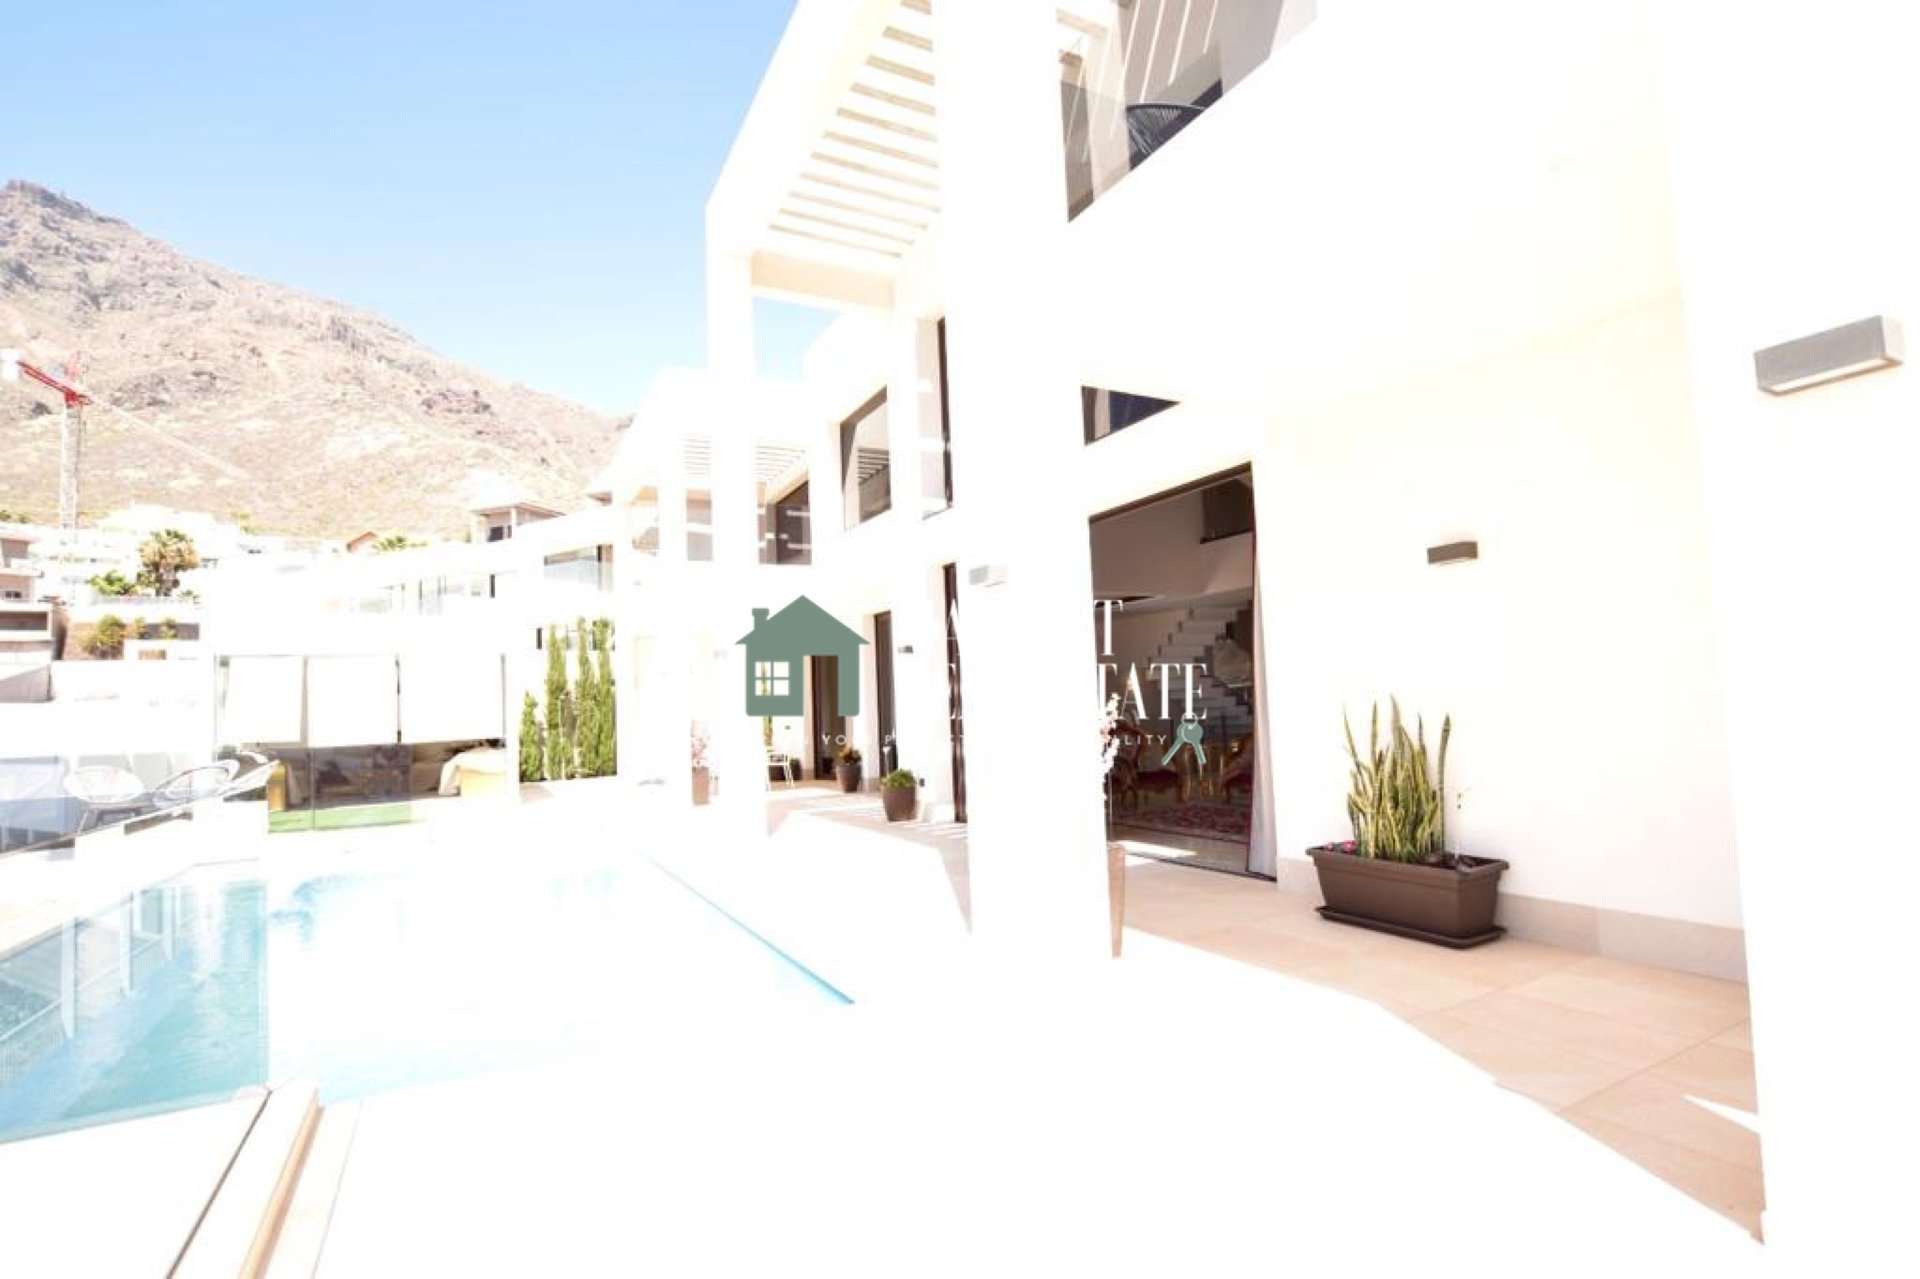 Magnificent independent house located in the exclusive area of Roque del Conde (Torviscas Alto) distributed over 3 floors and characterized by its decoration with authentic furniture.